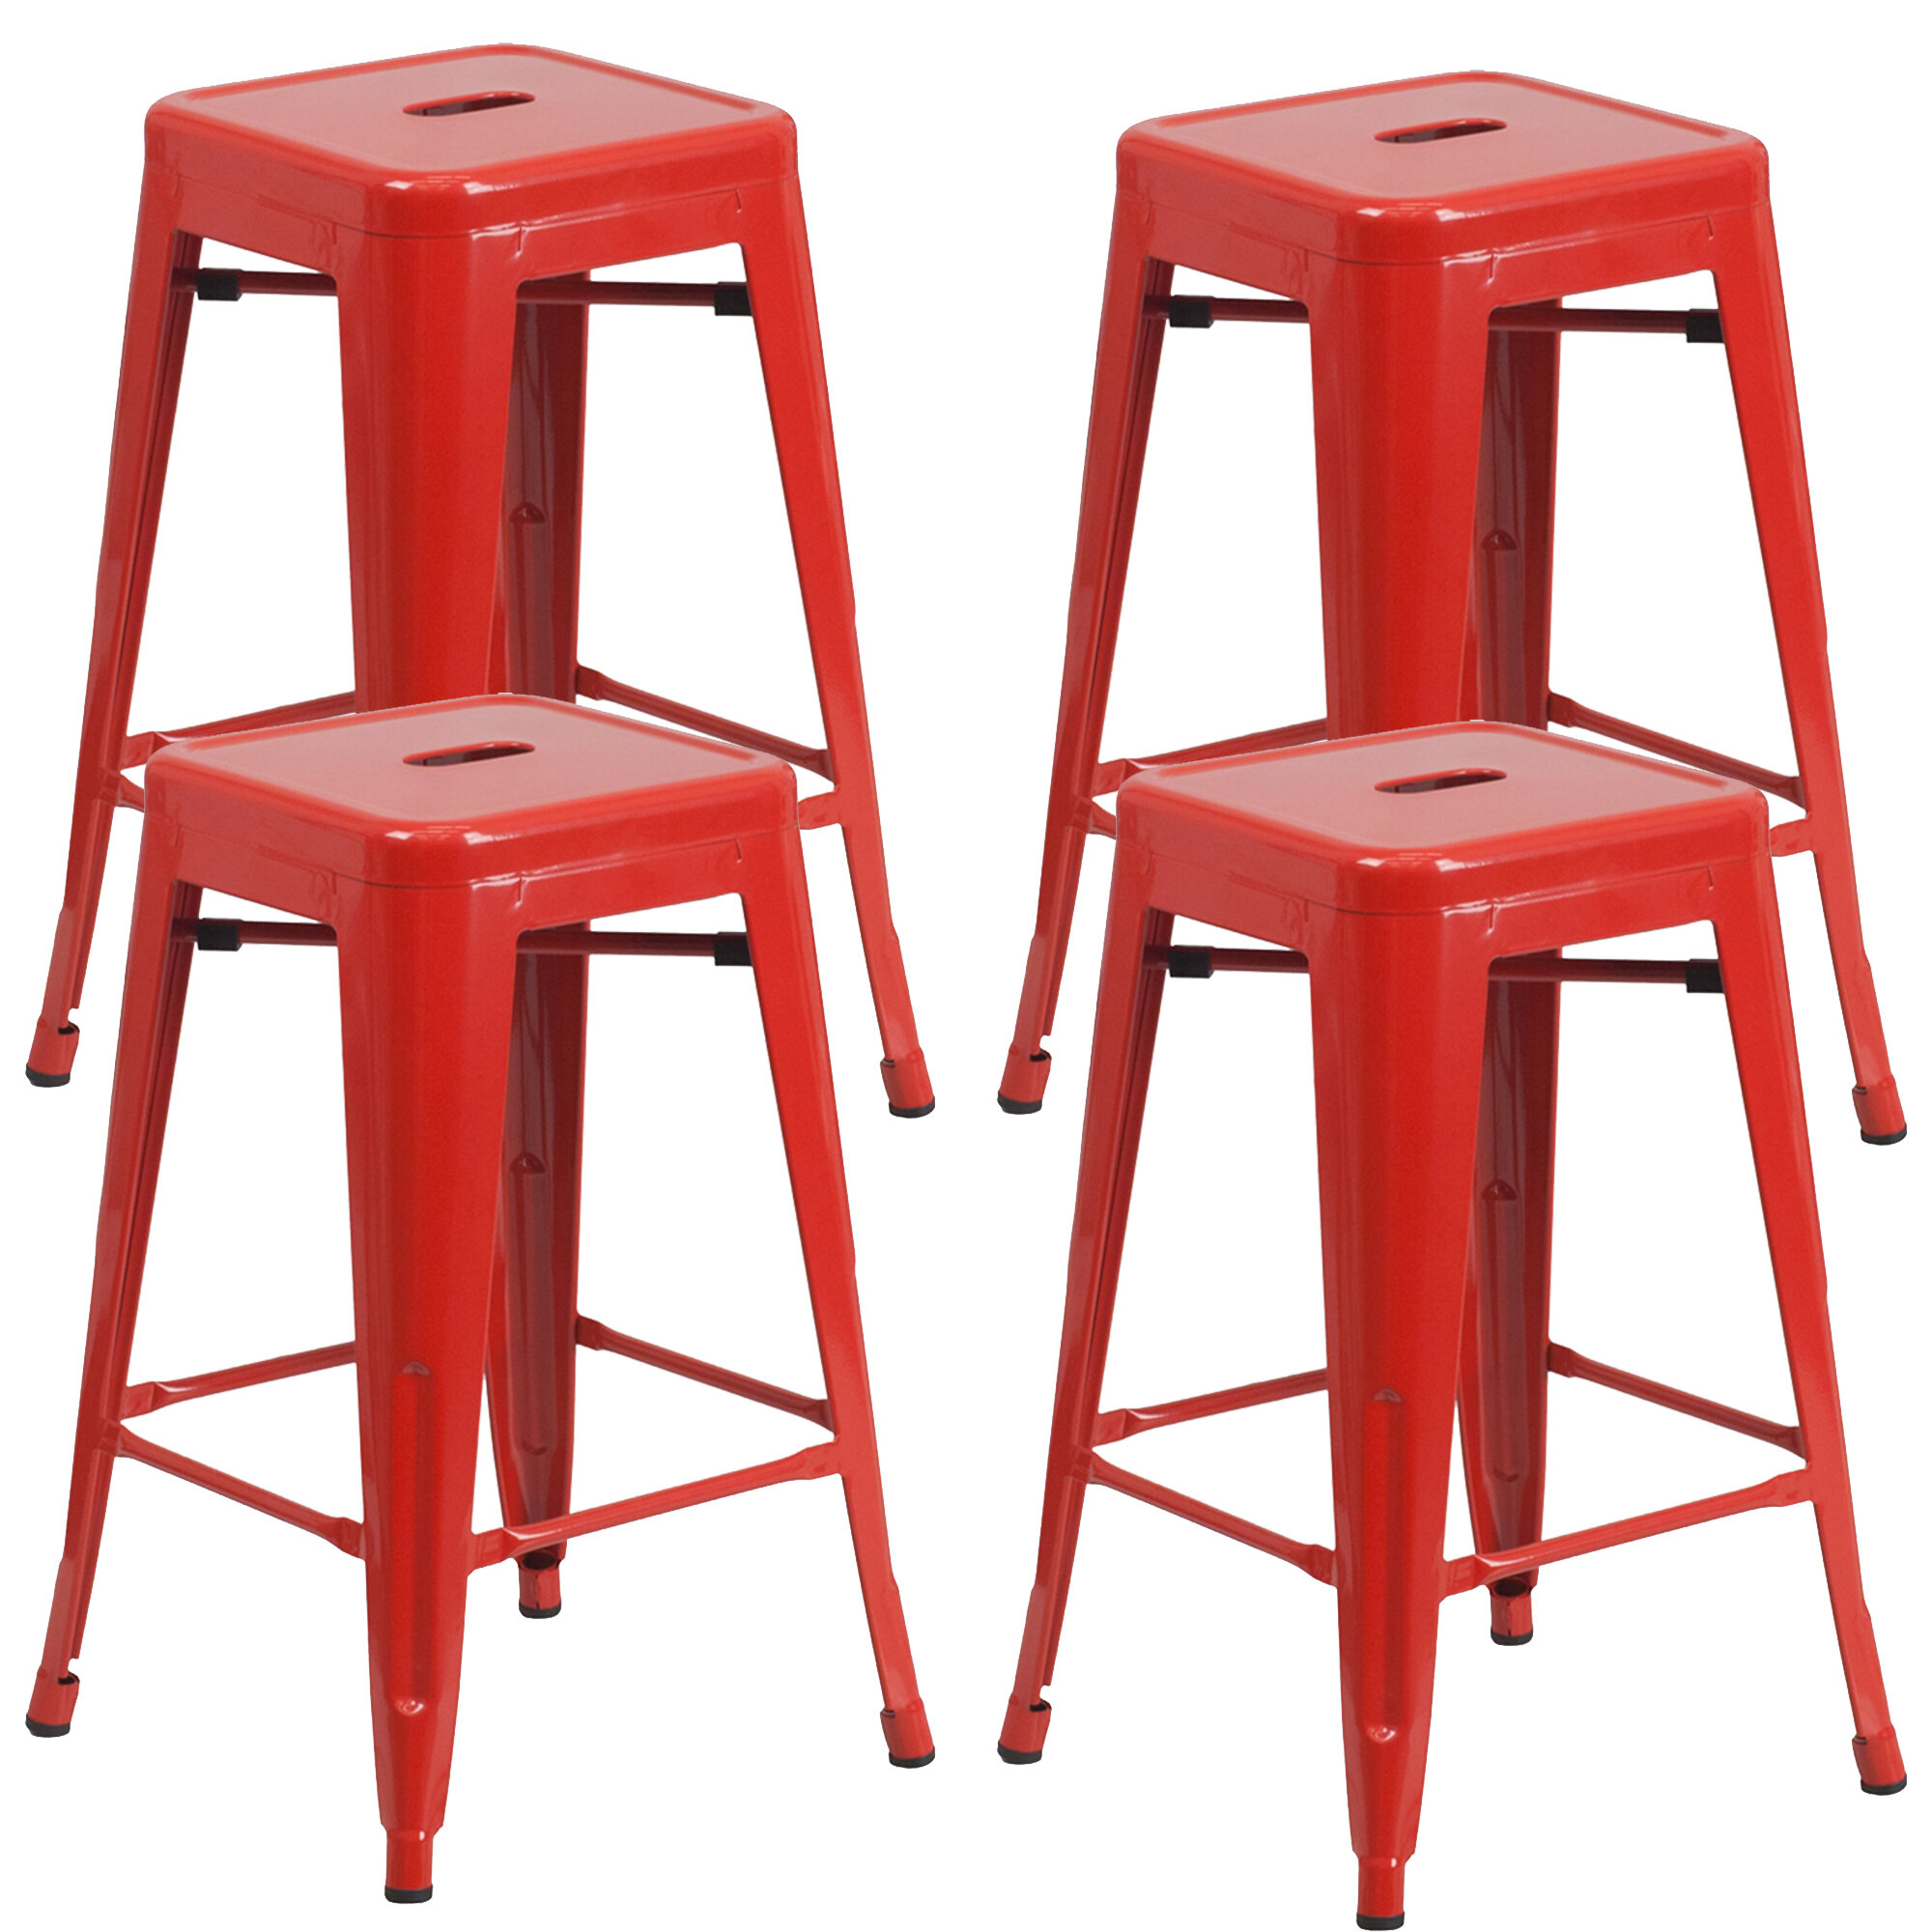 Latitude Run Farwell Backless 24 Bar Stool Reviews Wayfair